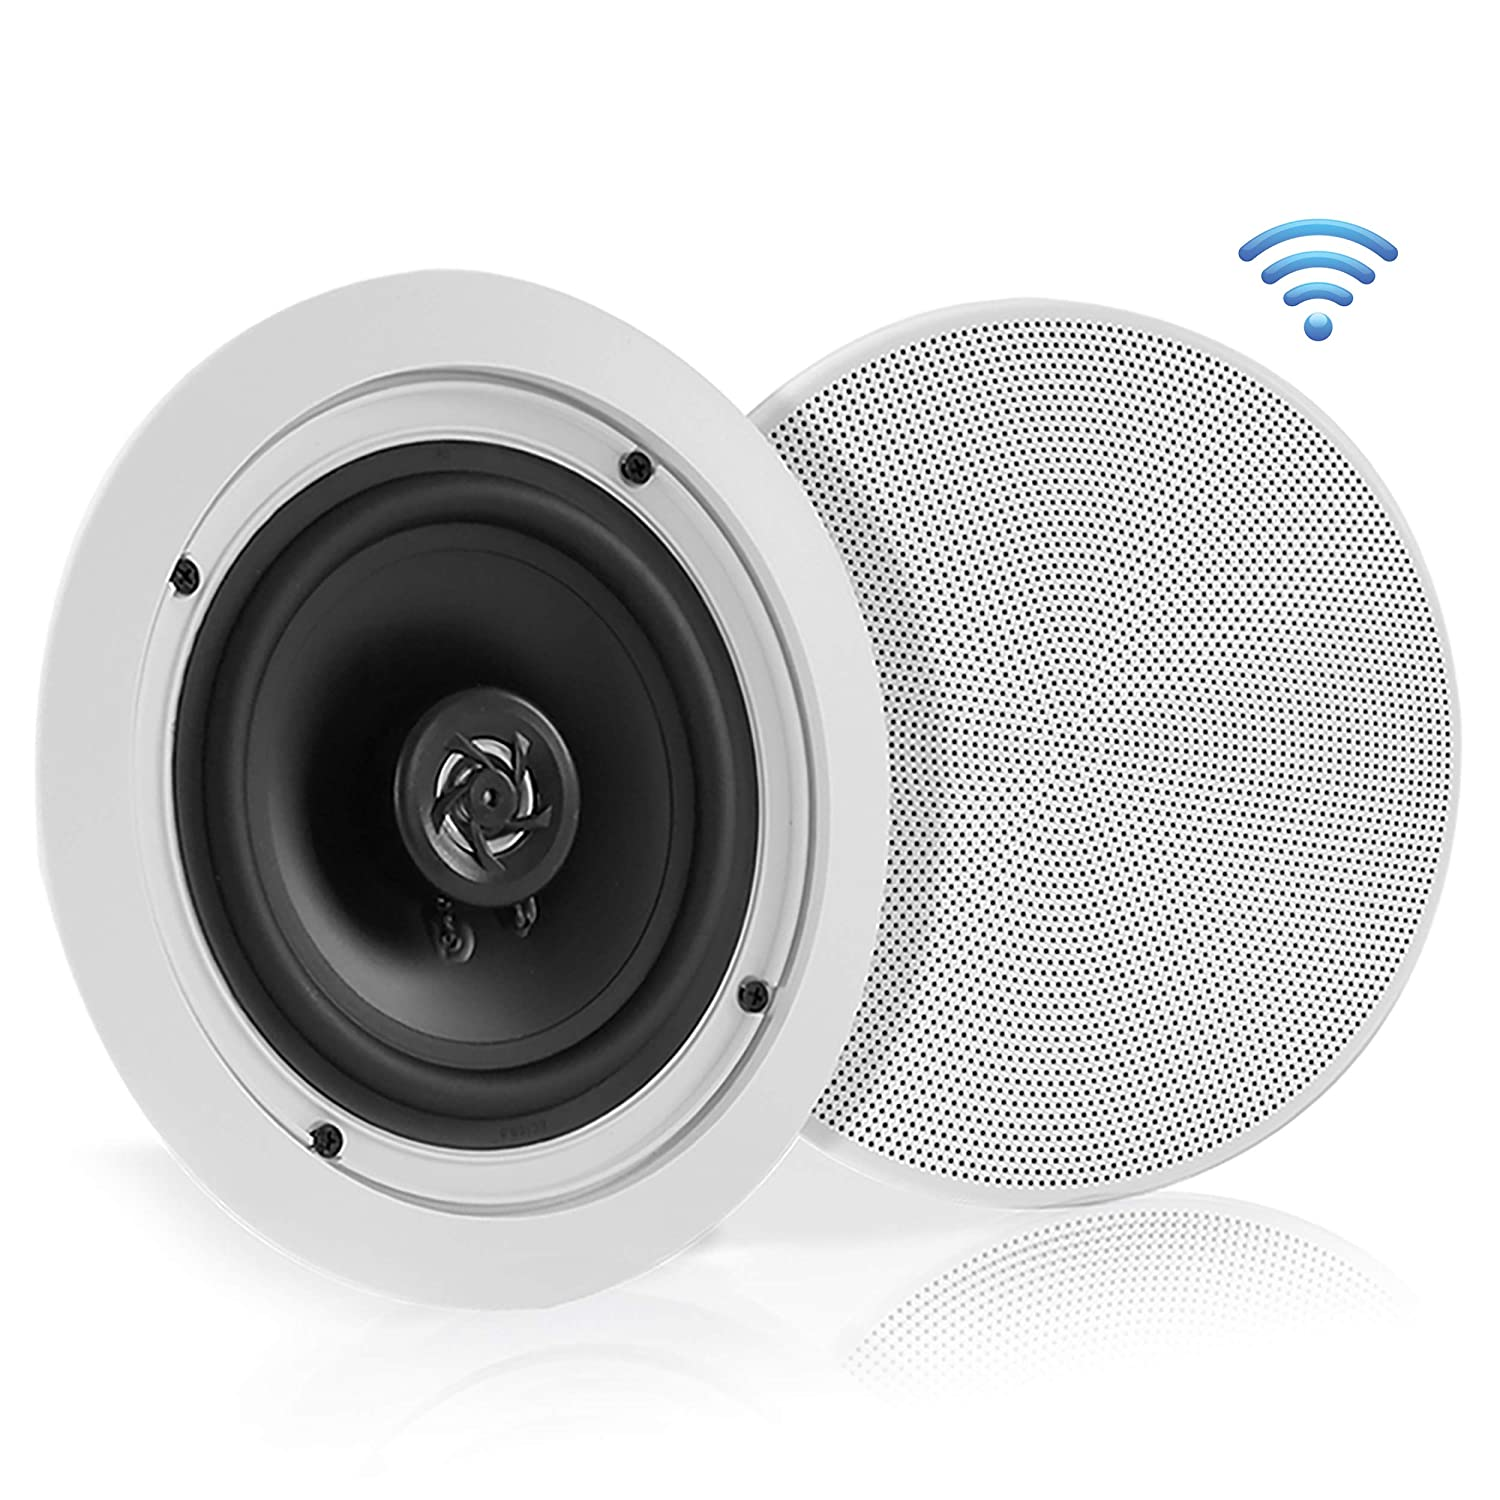 "Pyle 5.25"" Pair Bluetooth Flush Mount In-wall In-ceiling 2-Way Speaker System Quick Connections Changeable Round/Square Grill Polypropylene Cone & Polymer Tweeter Stereo Sound 150 Watt (PDICBT552RD)"